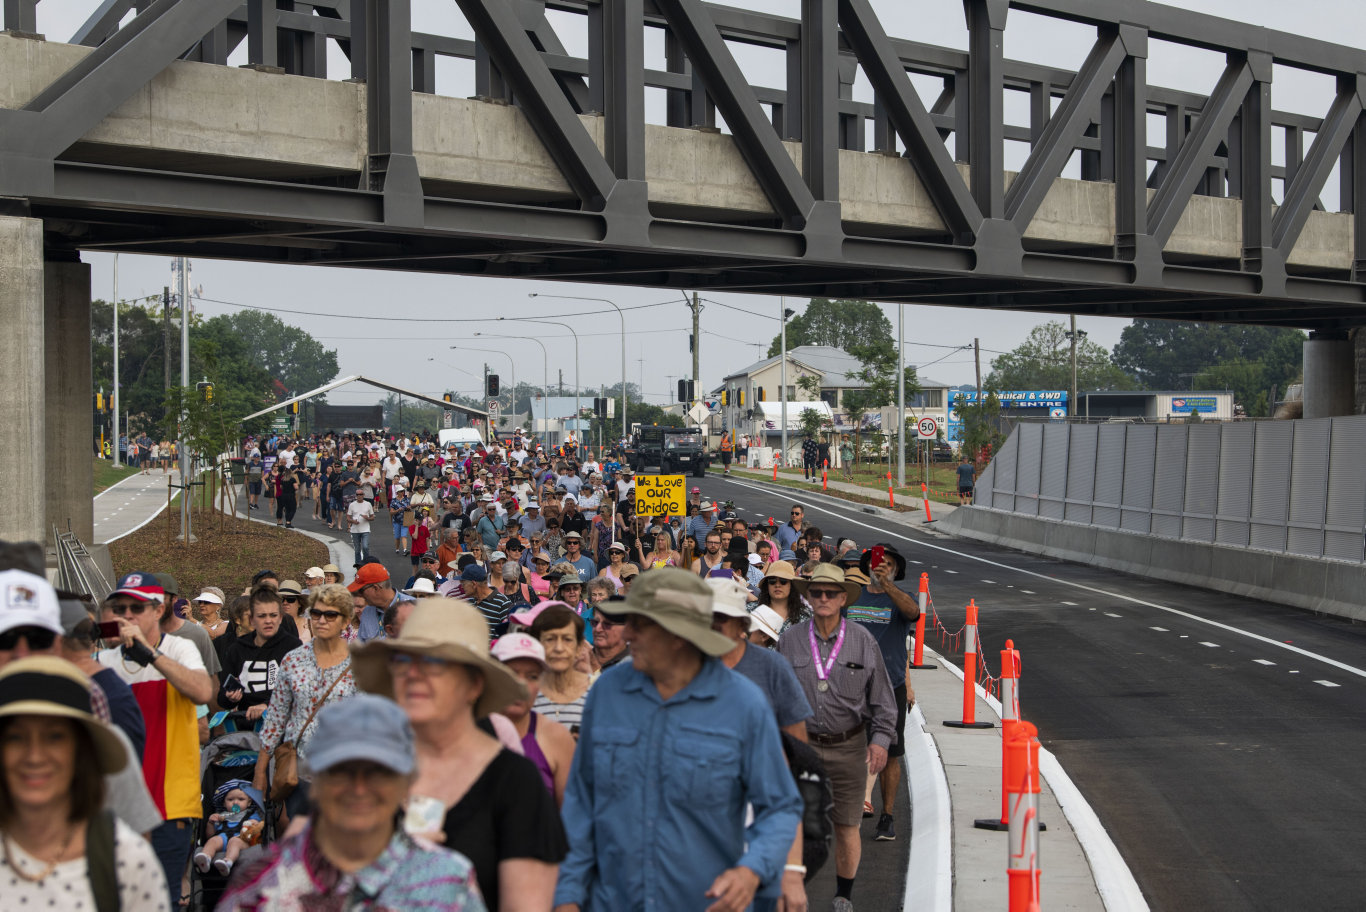 Grafton showed exactly what they thought of their long awaited second bridge when thousands turned out to walk across it yesterday. There was even a sign just to make sure.